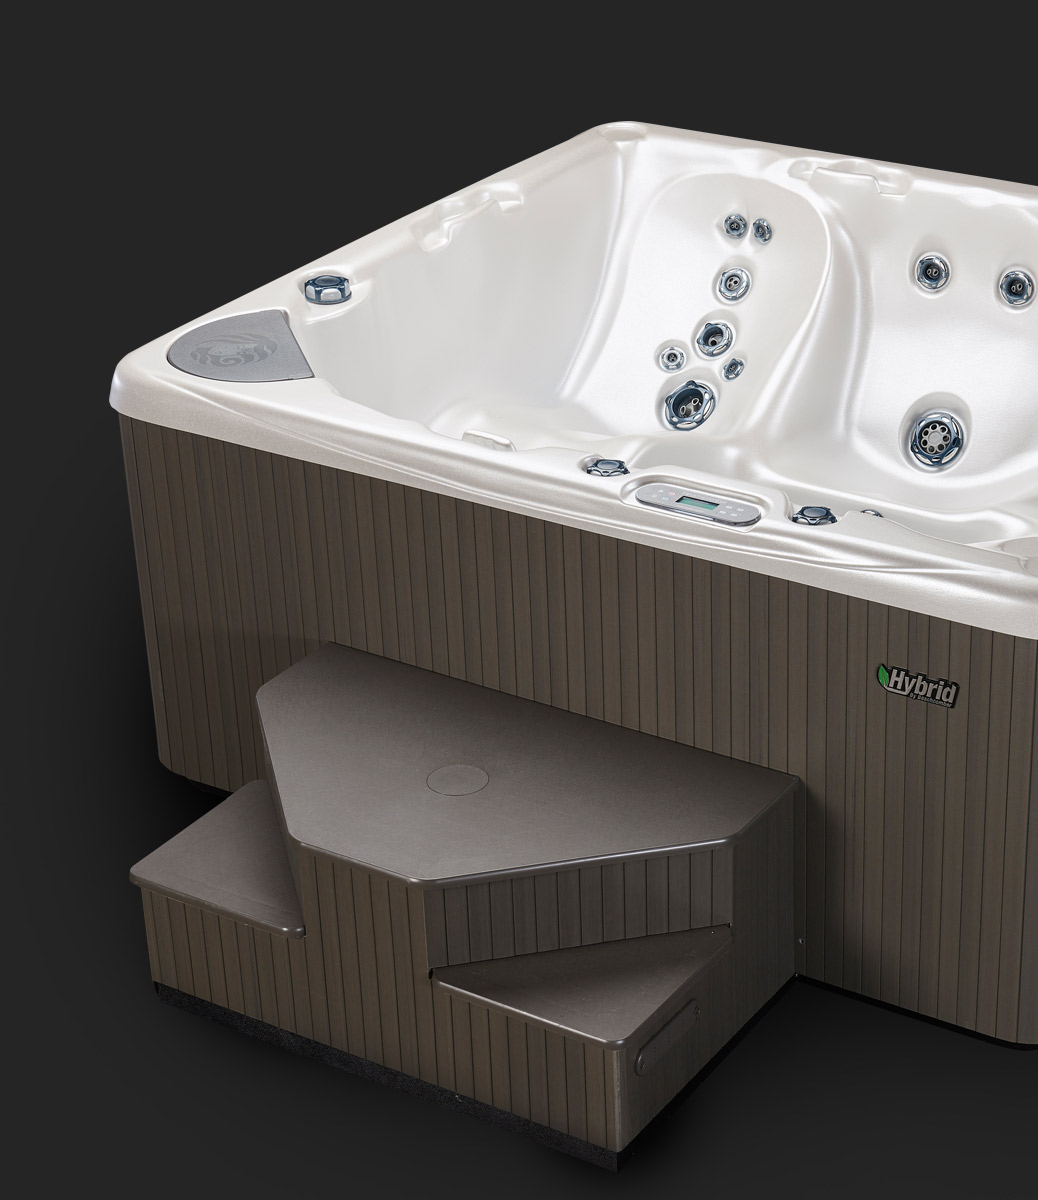 Beachcomber Hot Tubs Modèle 725